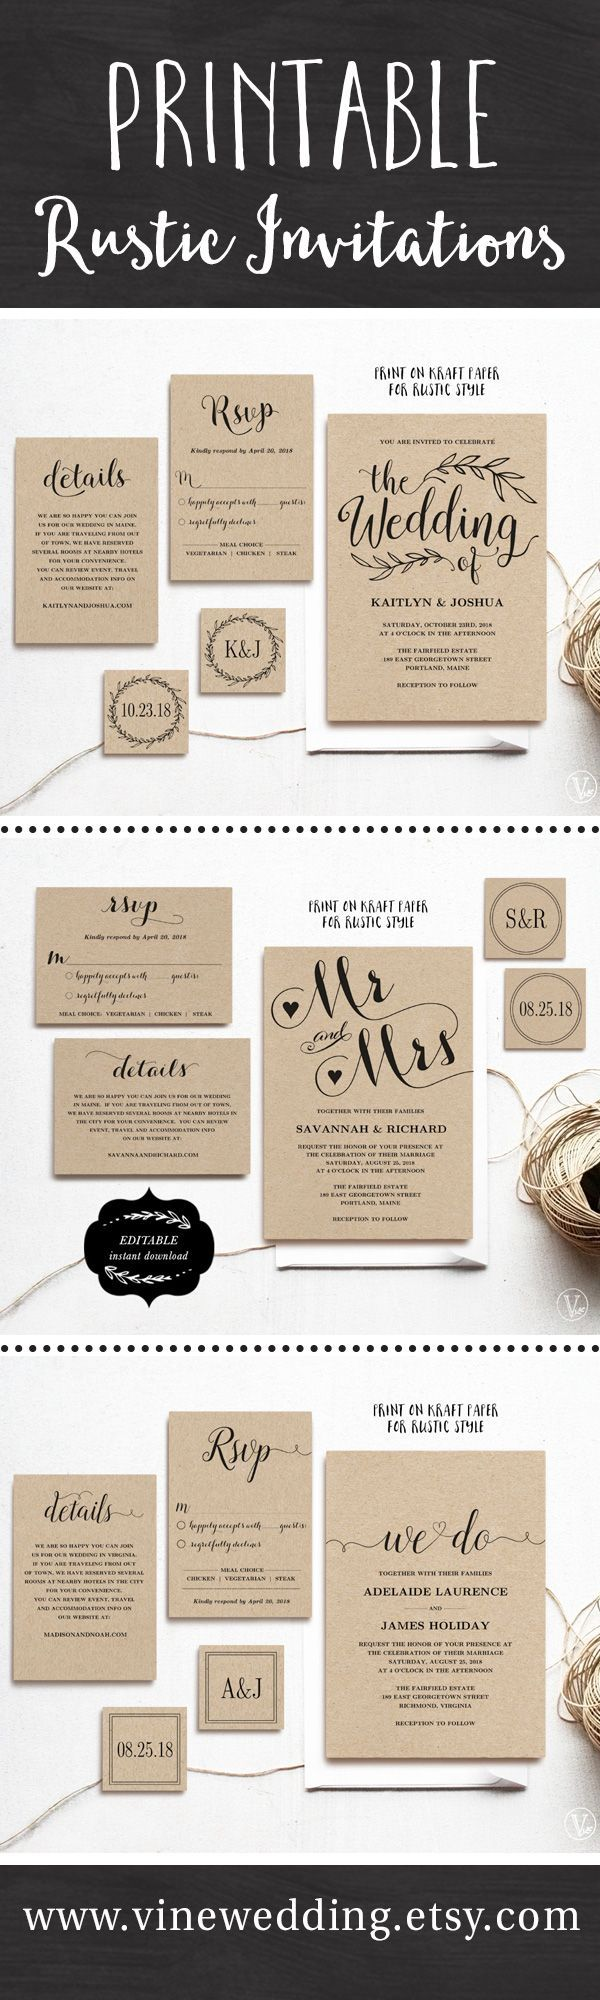 diy wedding invitations best photos wedding